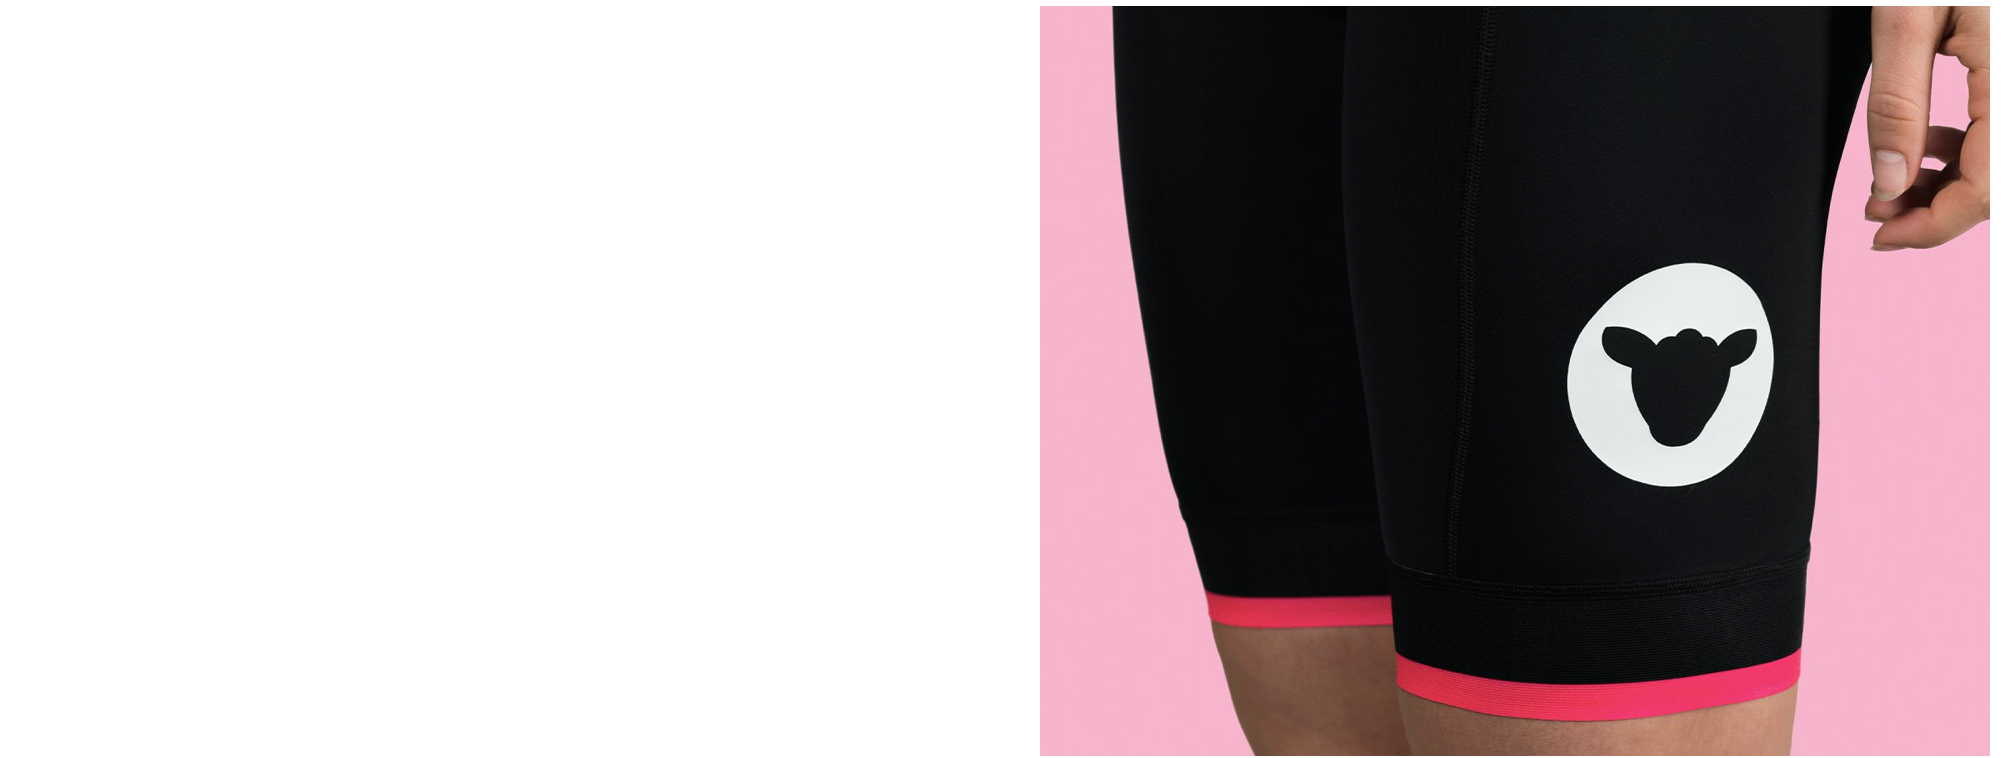 Black Sheep Cycling Essentials レディースサイクルビブショーツ - Black/Neon Pink | CYCLISM